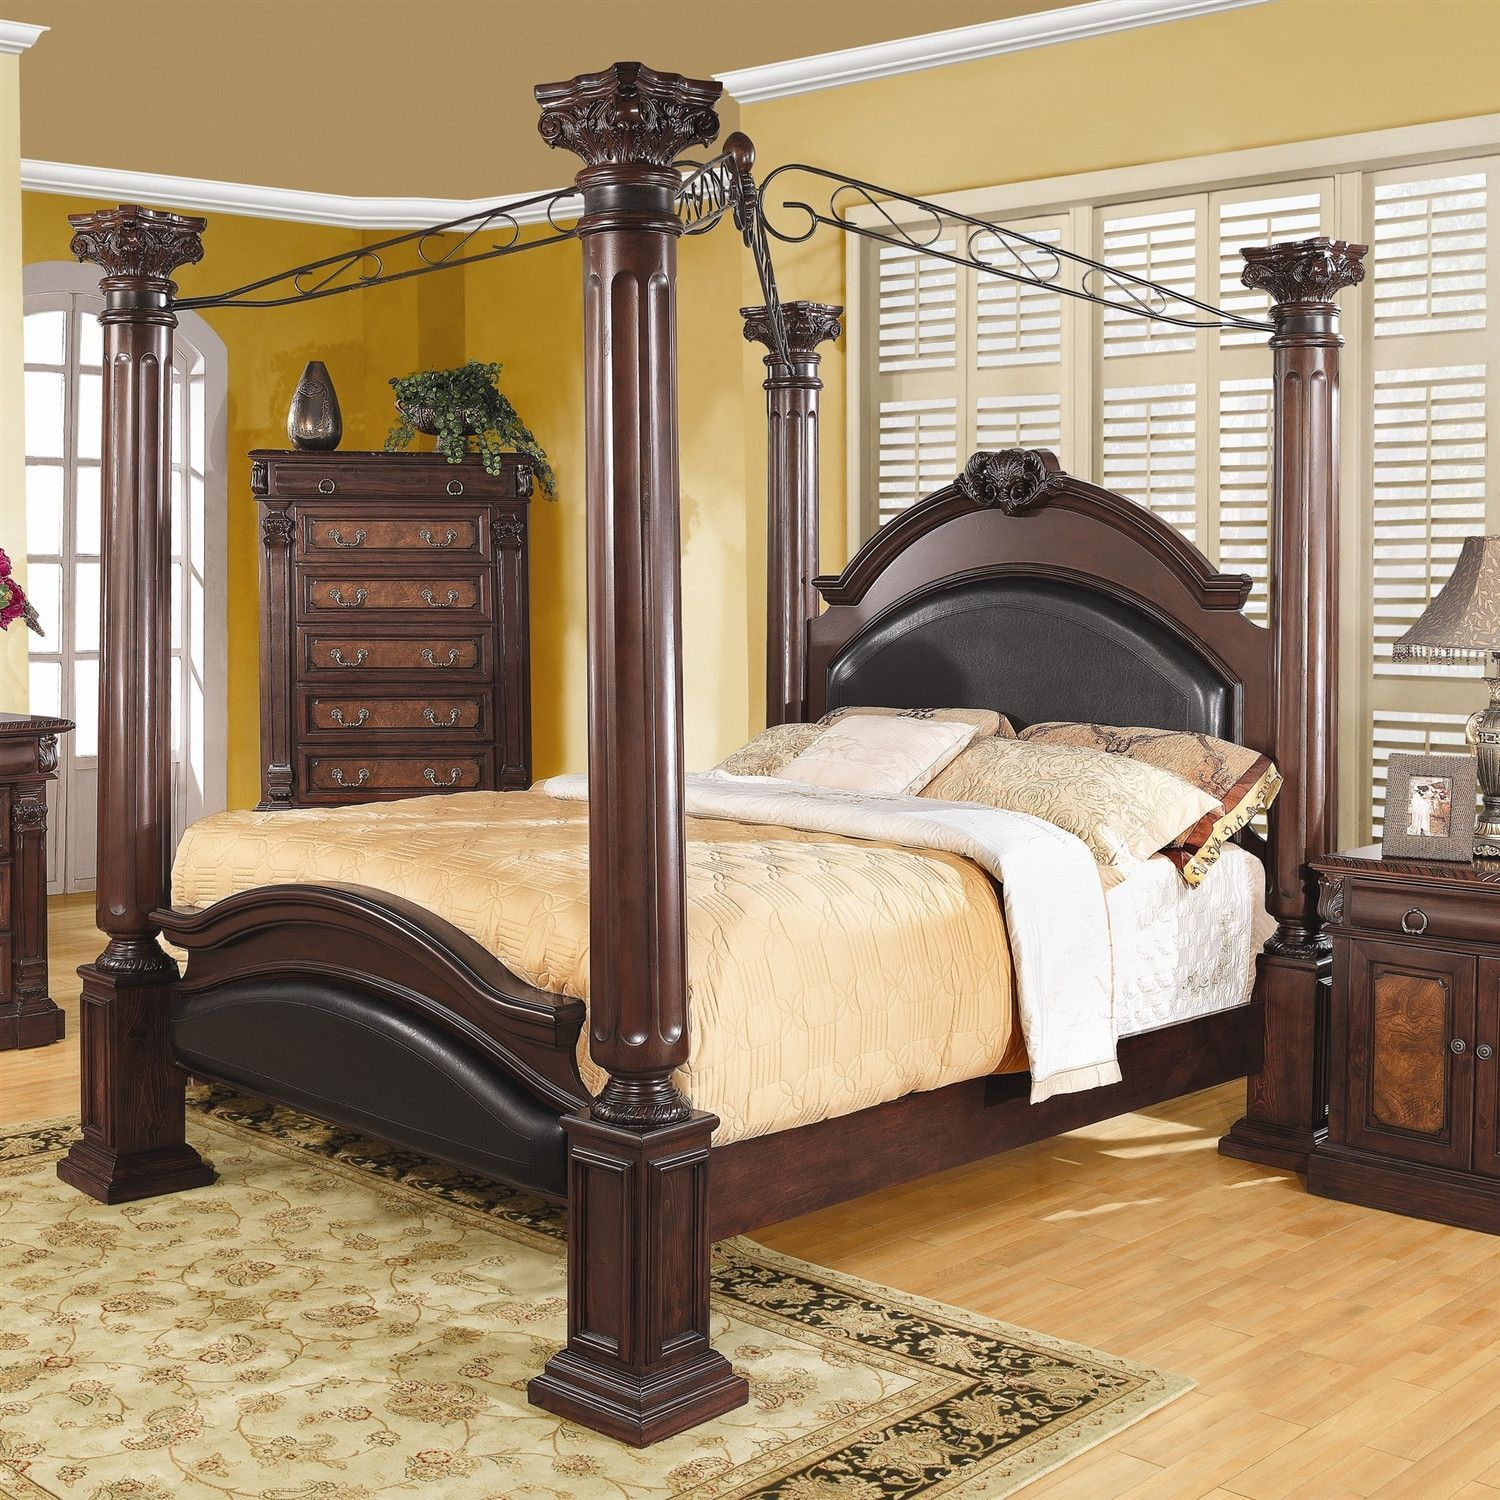 Exceptionnel Queen Size Canopy Bed 4 Poster Bed With Large Posts